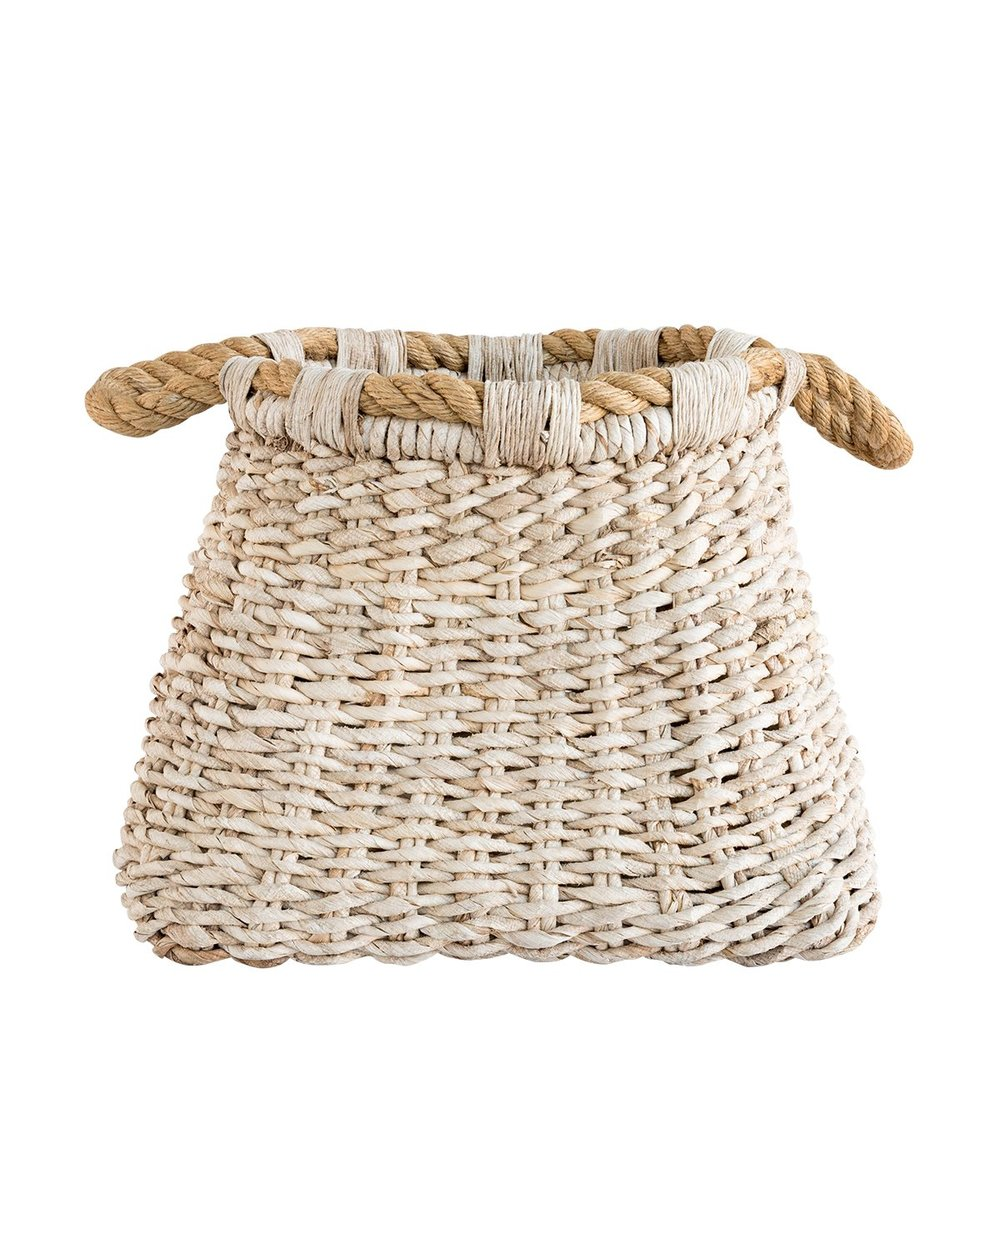 banana bark basket - sold by McGee & Co